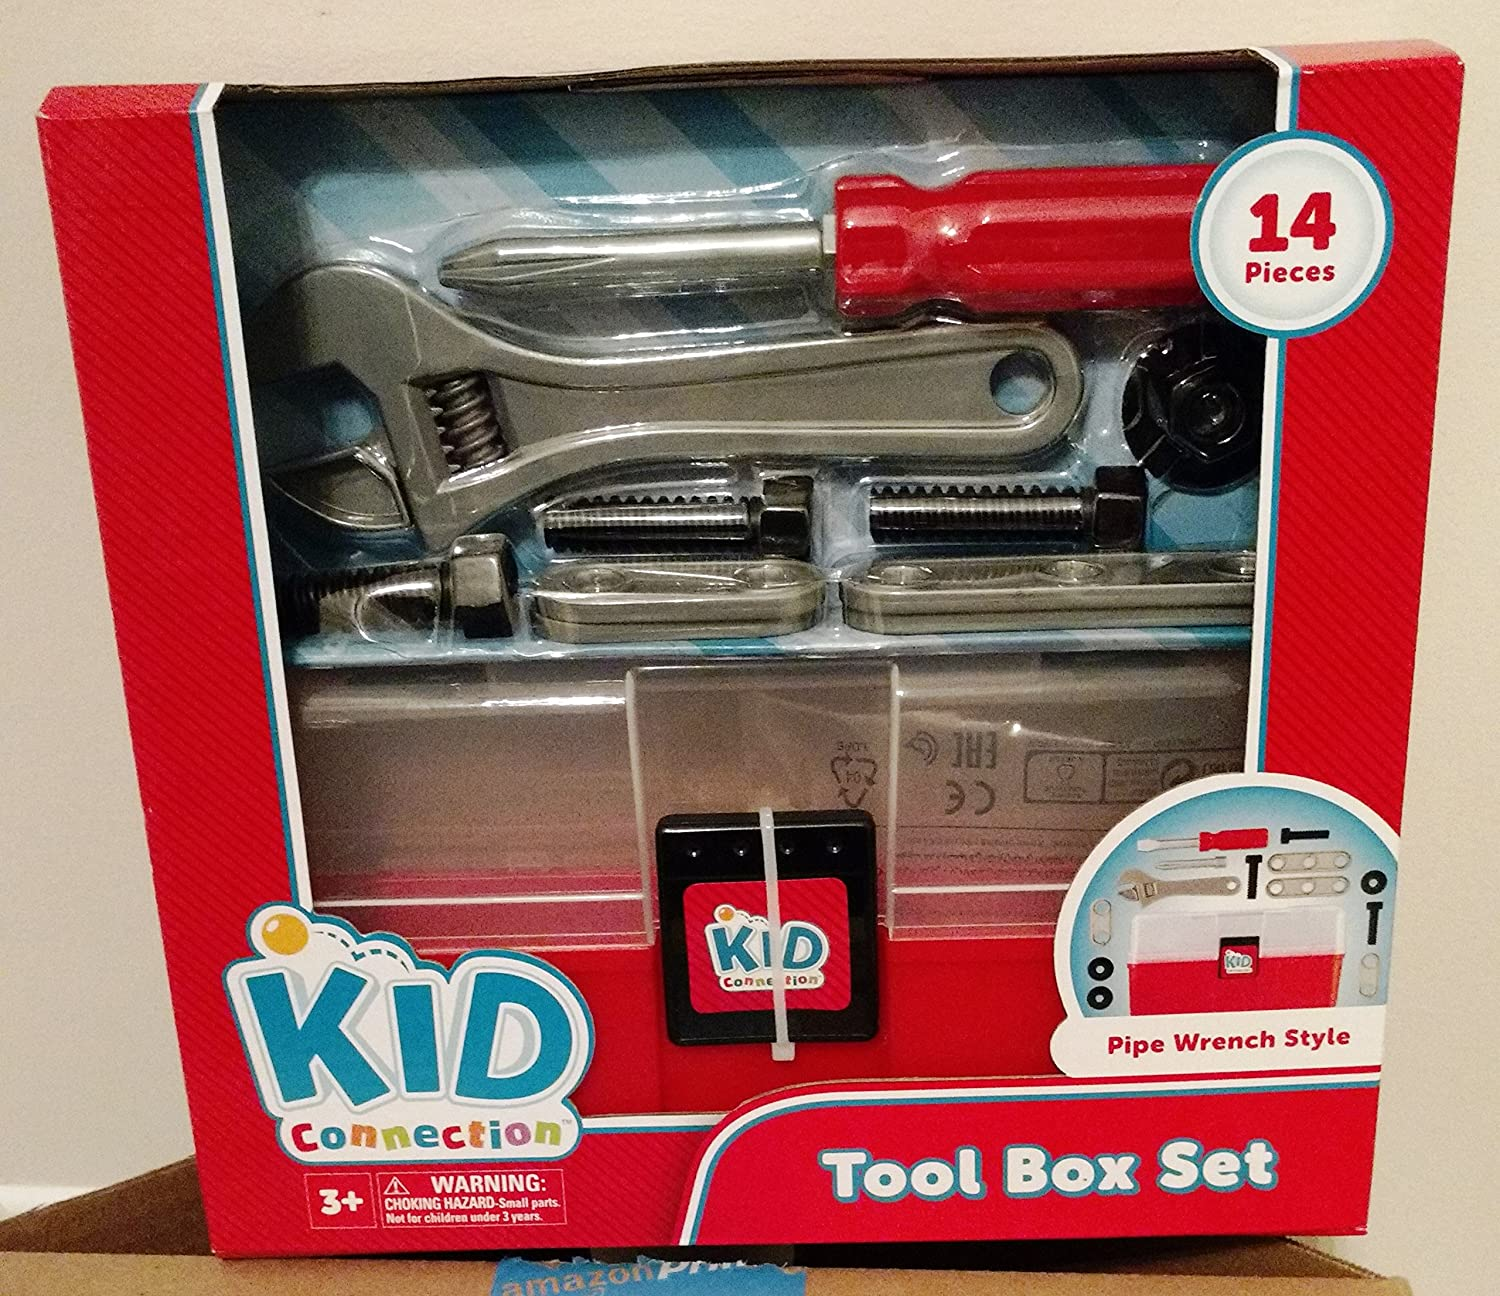 Kid Conection Tool Box set Pipe Wrench Style Made in China